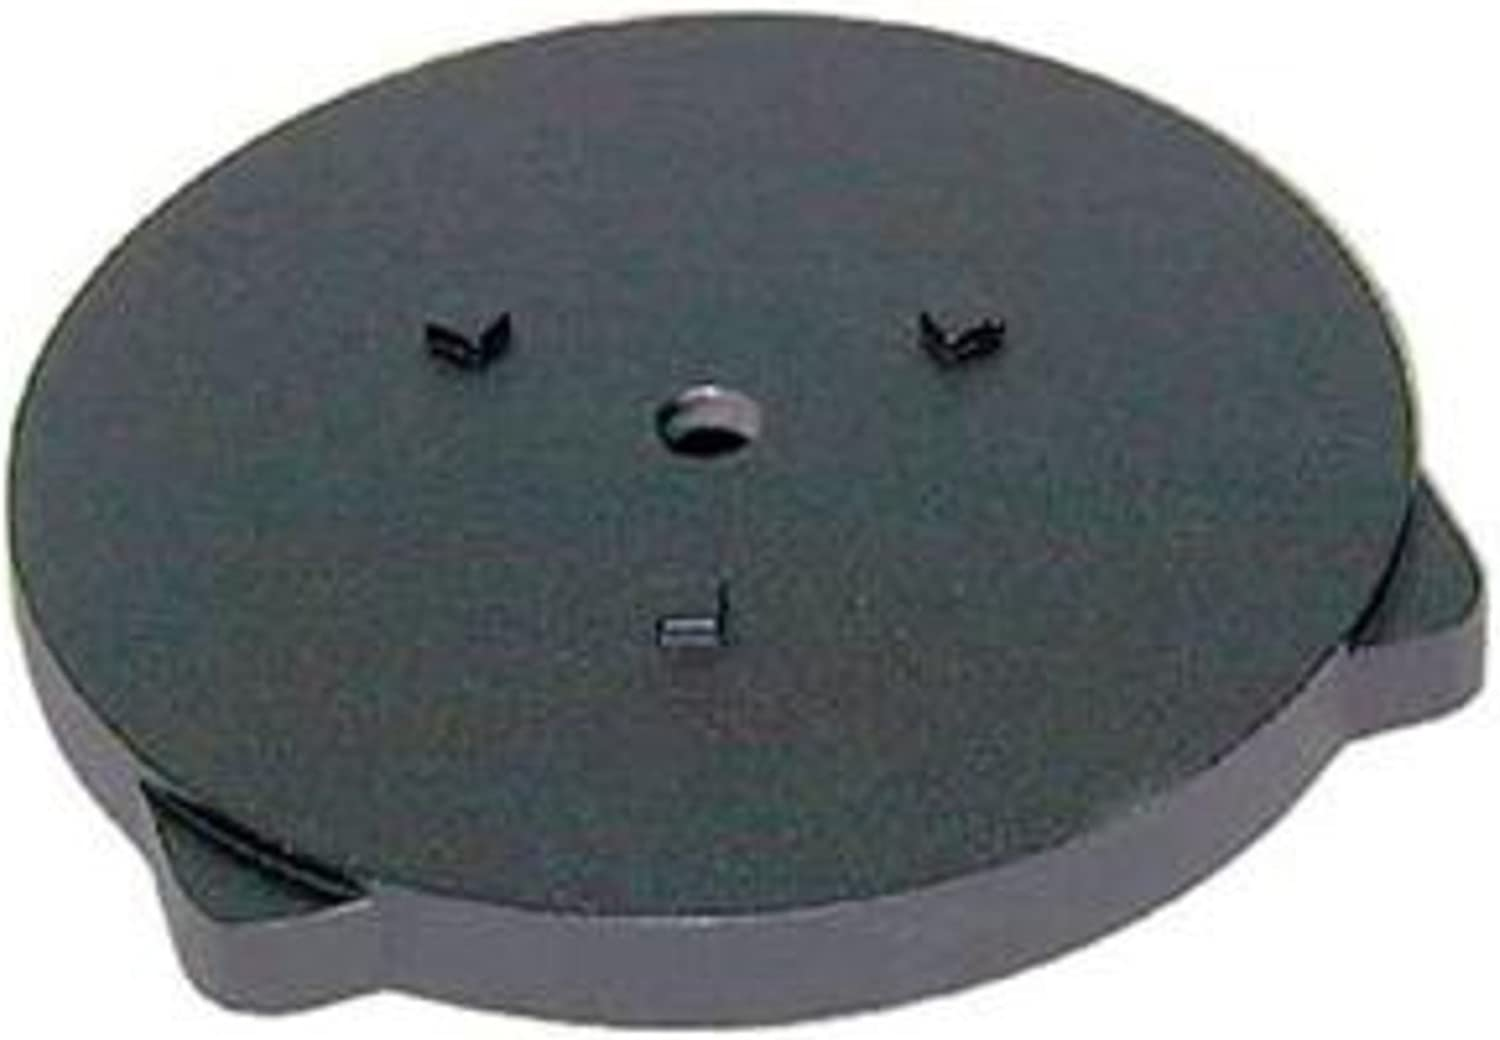 Meade 07389 LX90 Equatorial Wedge Adapter Plate Black